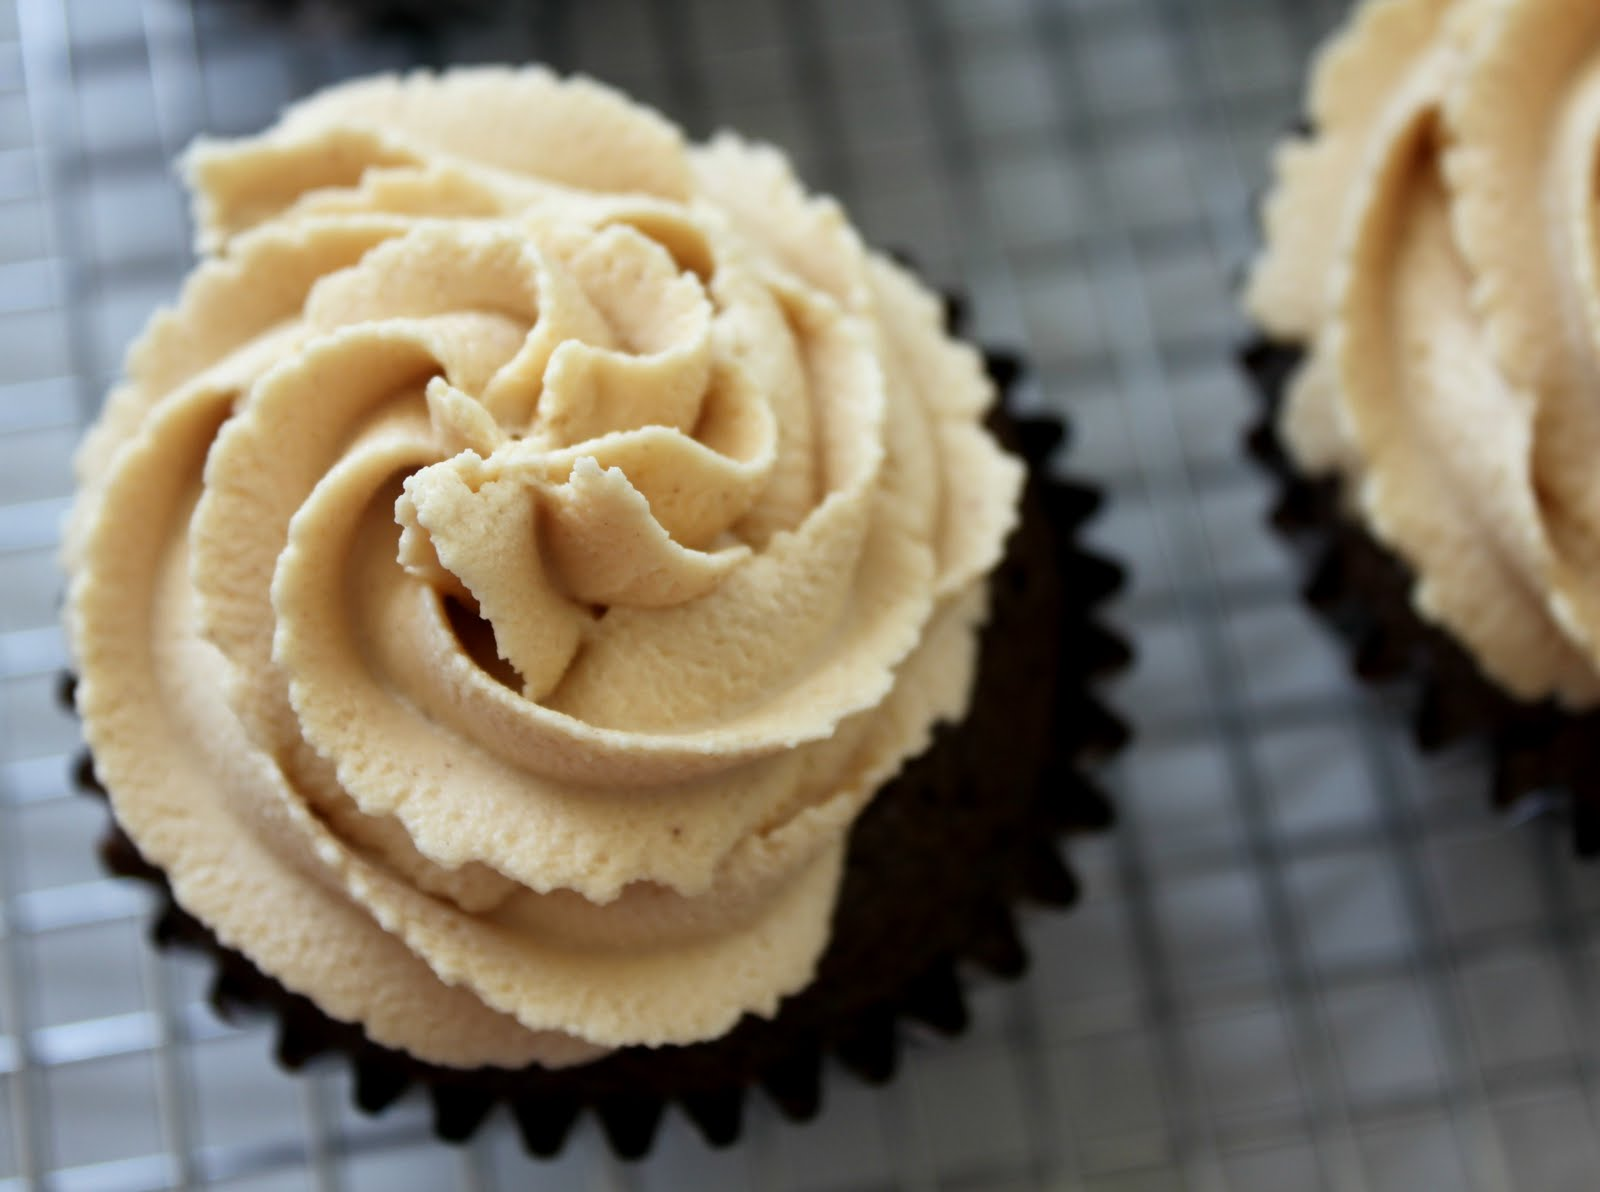 Fudge with Peanut Butter Filled Cupcakes